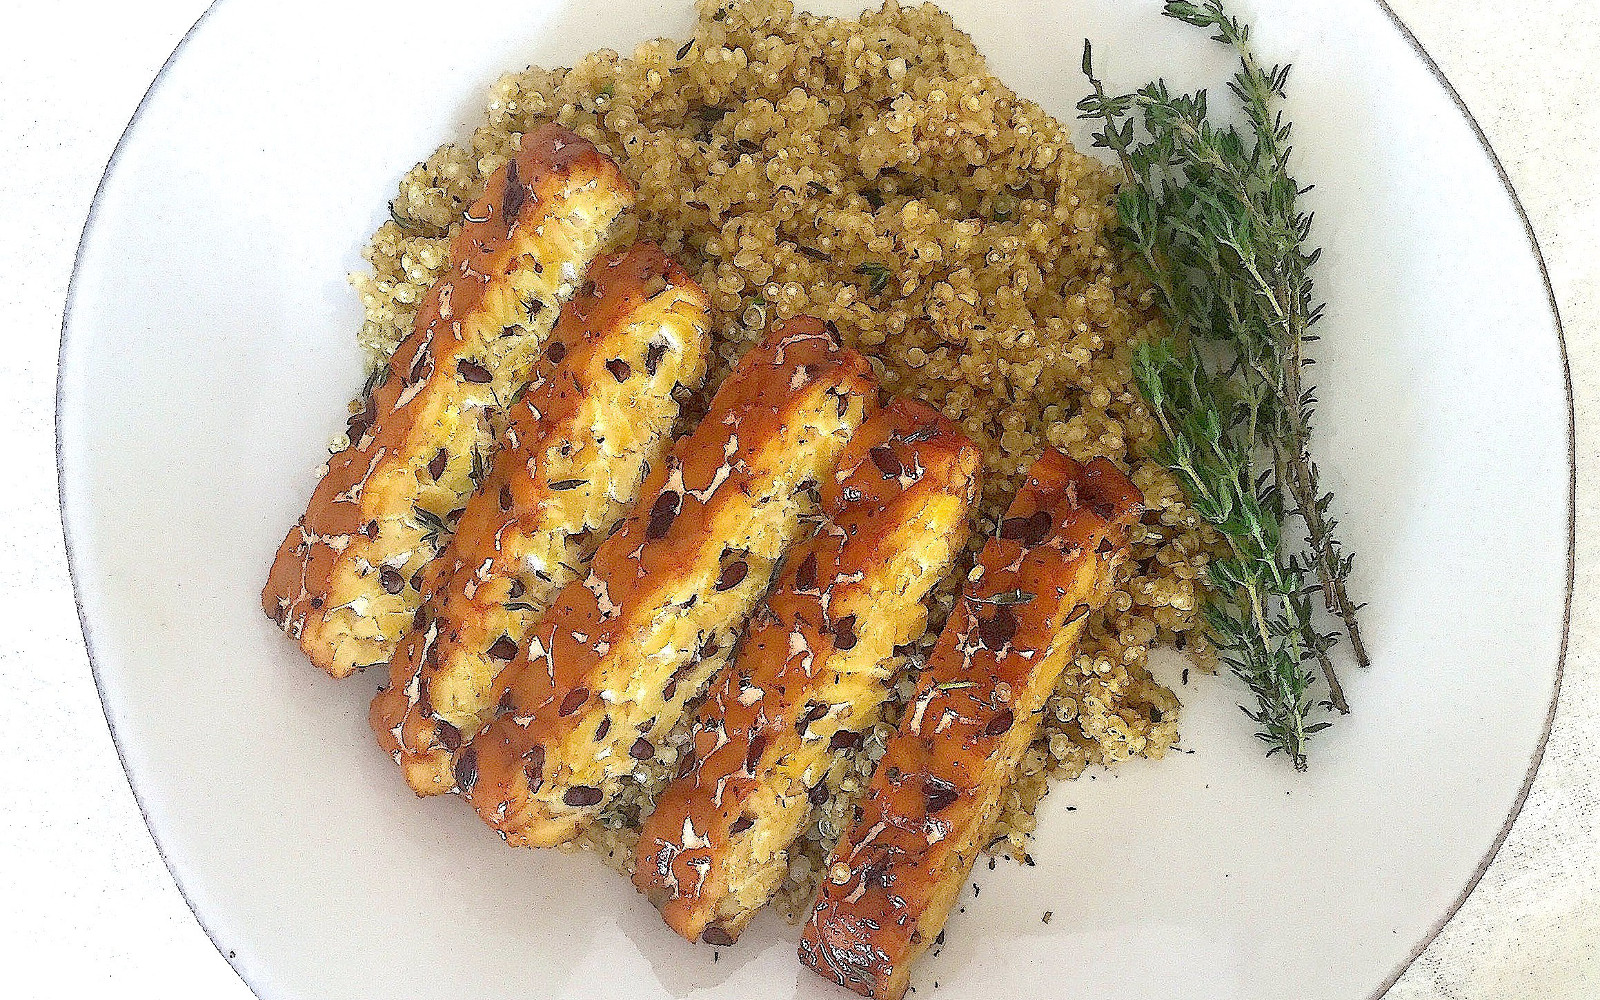 Savory Herb-Baked Tempeh and Quinoa